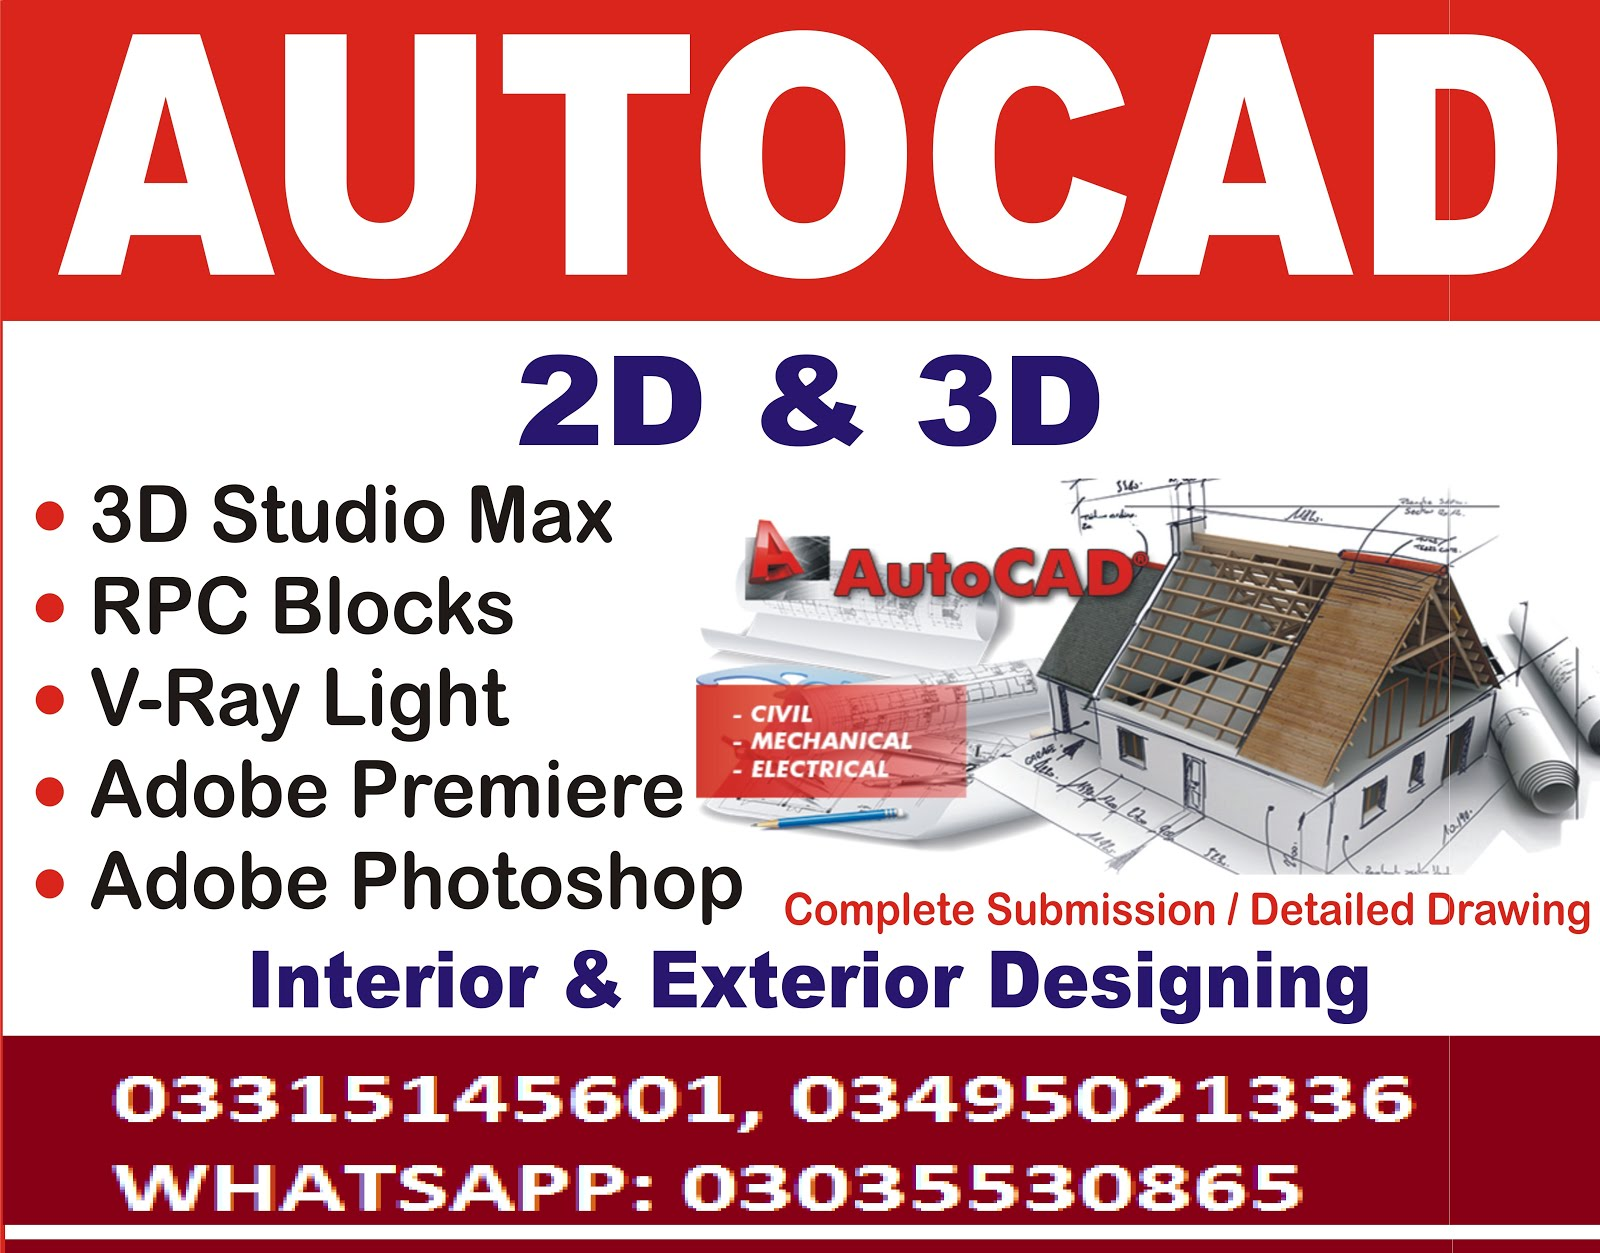 Autocad Training Course in Chakwal Pakistan Rawalpindi 2D & 3D